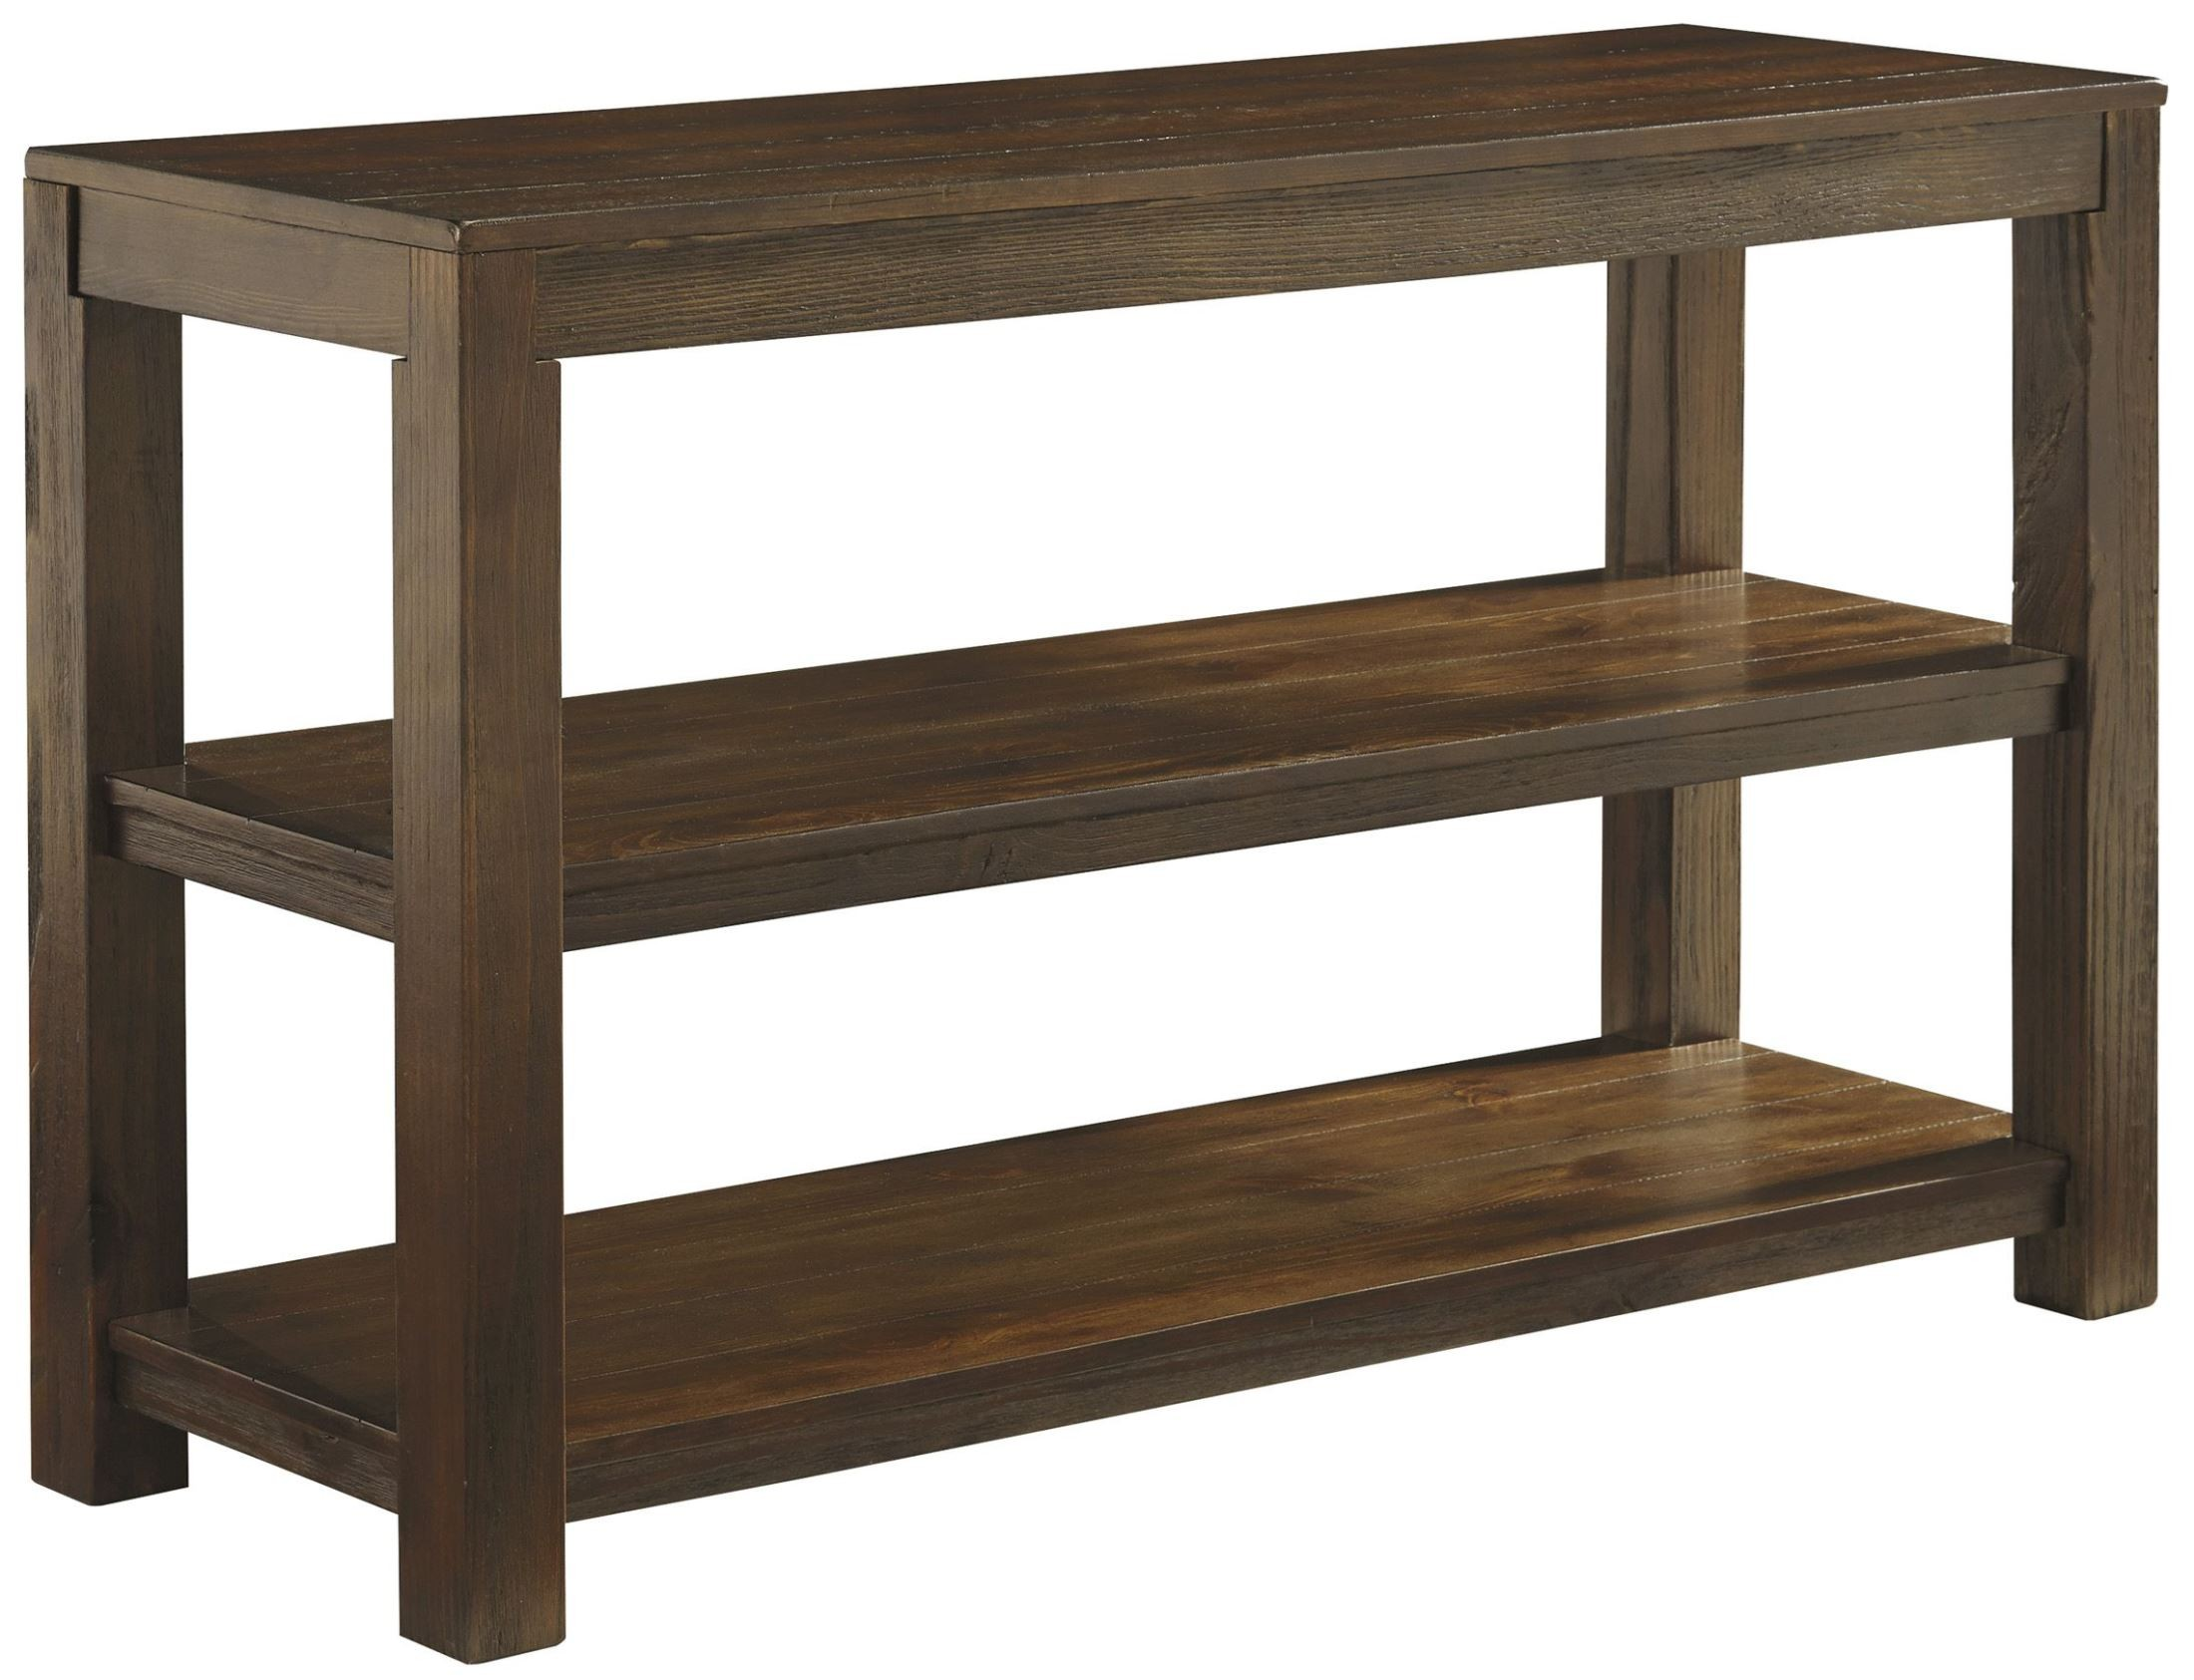 Grinlyn sofa table from ashley t660 4 coleman furniture for 5 sofa table